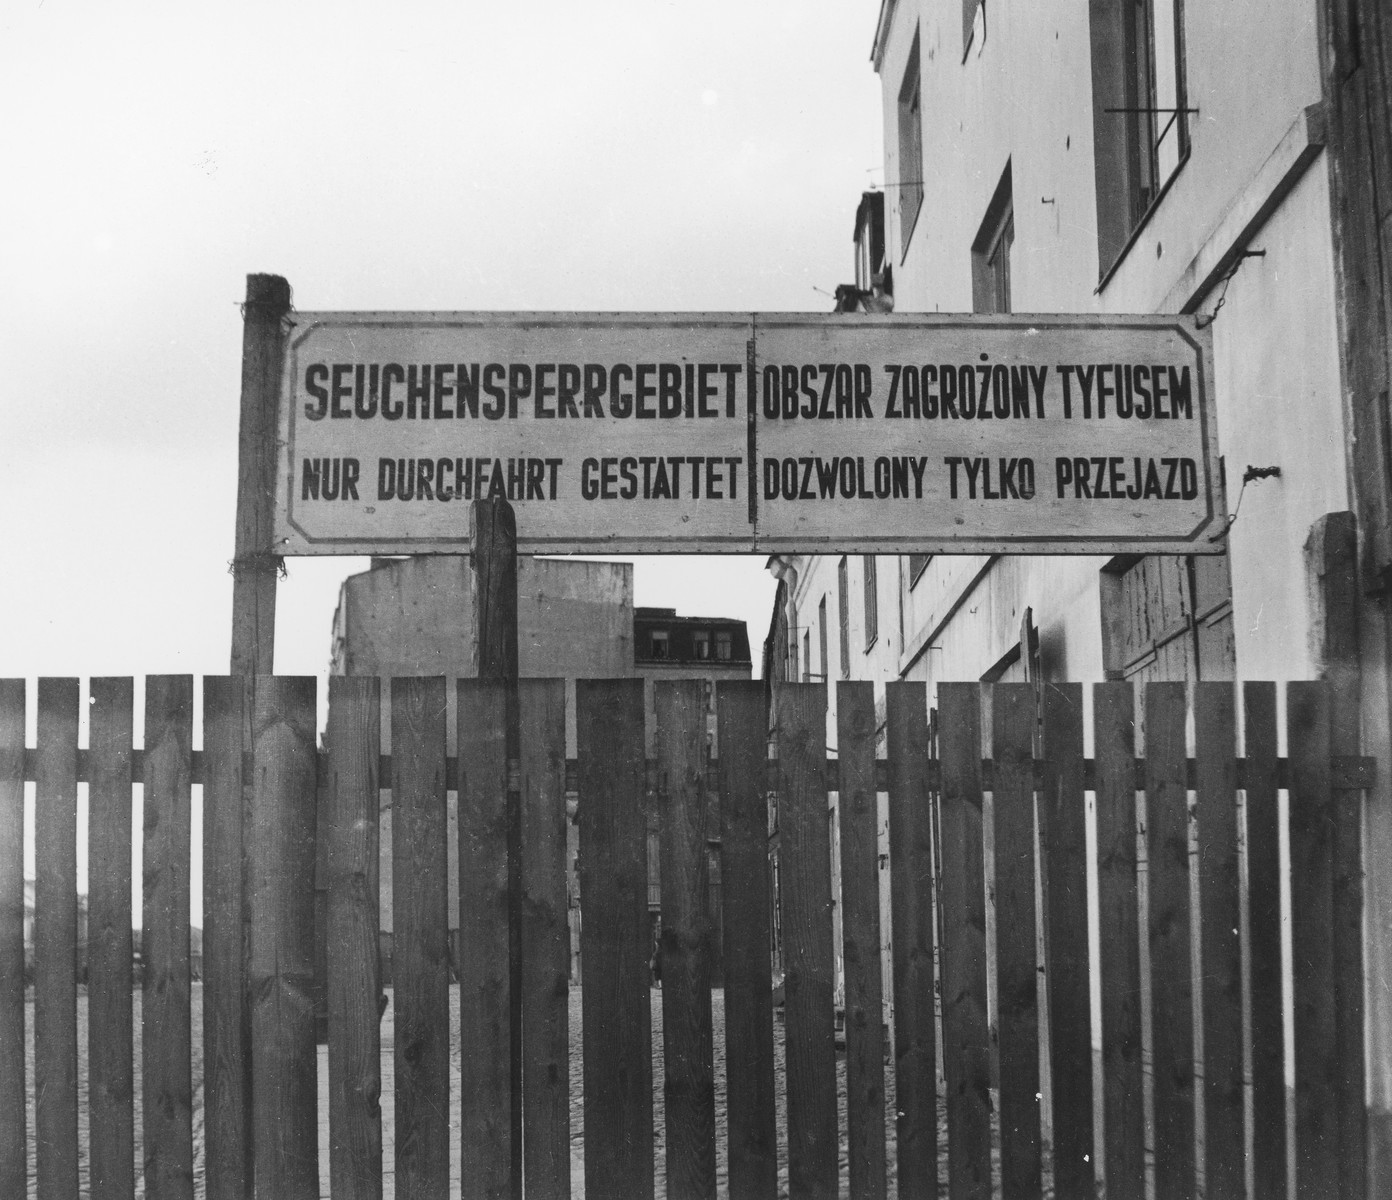 """A sign in German and Polish posted at entrance 2 to the Warsaw ghetto reads, """"Area closed because of epidemic. Only through traffic permitted.""""    Joest's original caption reads: """"No one drew back in fear from the terrifying sign 'Epidemic Quarantine Area' posted at the entrances to the Ghetto.  'Aryan' Poles were allowed to pass through; Jews were not."""""""